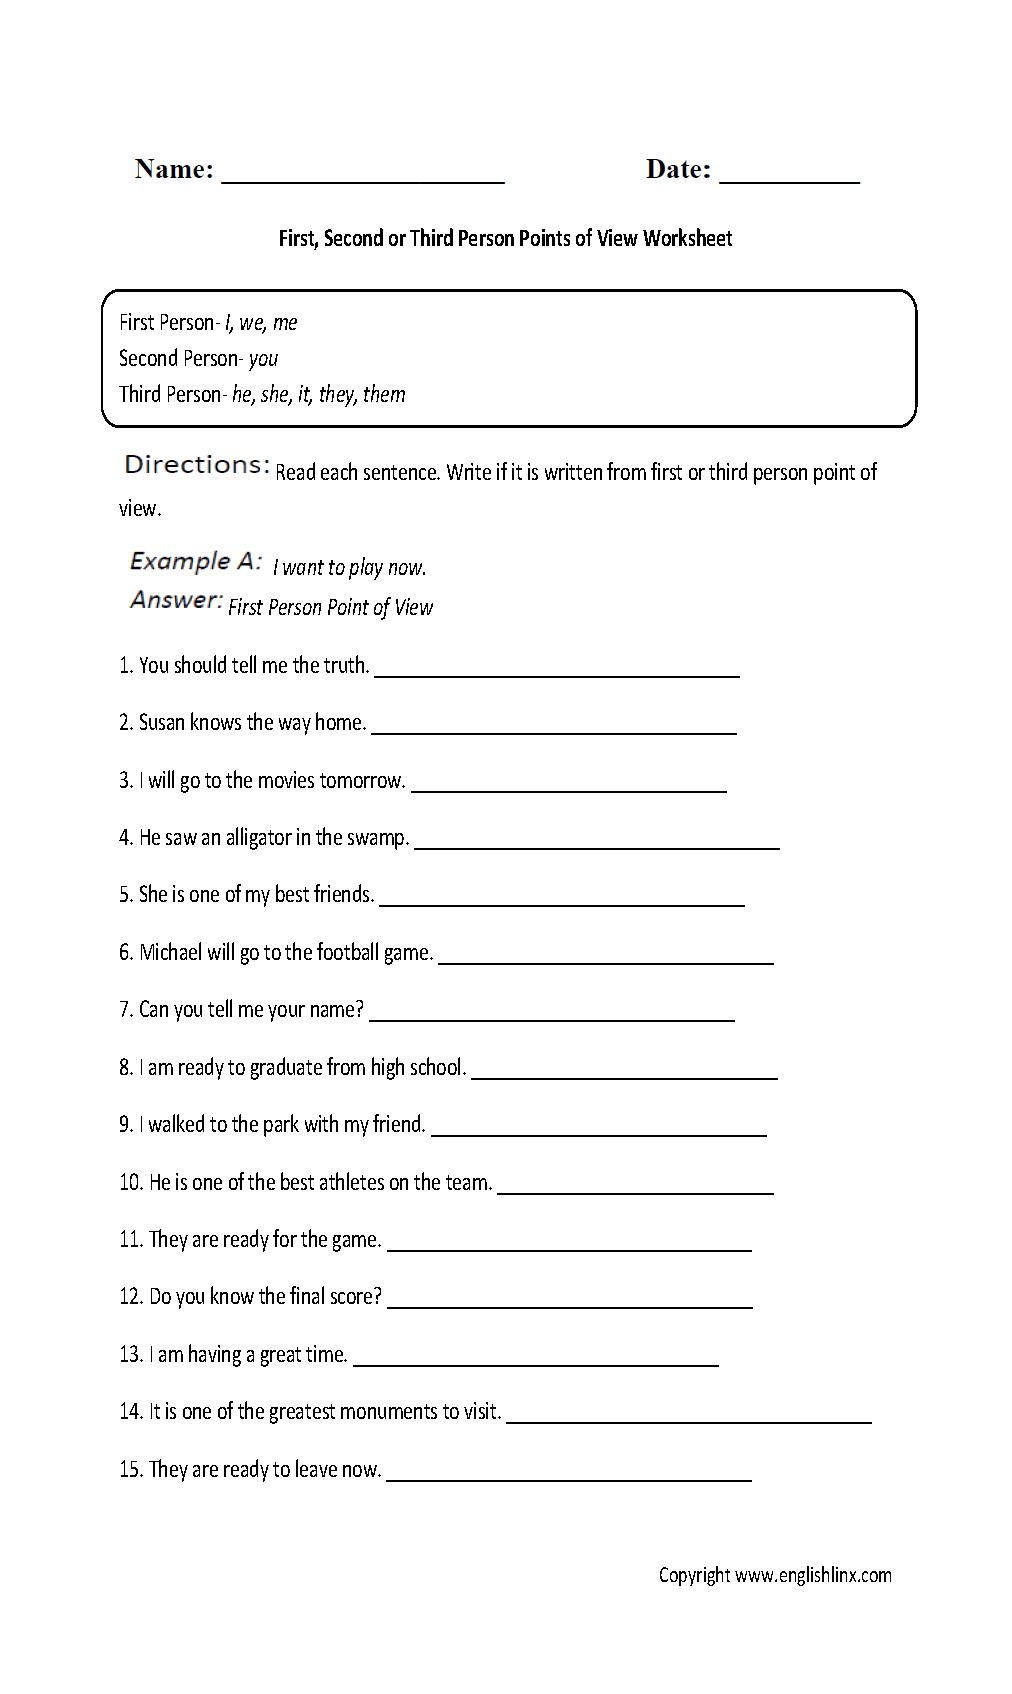 Weirdmailus  Seductive Englishlinxcom  Point Of View Worksheets With Lovable Point Of View Worksheet With Cool Worksheets On Simple Present Tense Also English Preposition Worksheets In Addition Adding Using A Number Line Worksheet And Examples Of Worksheets As Well As Cardinal And Intermediate Directions Worksheets Additionally Am And Pm Time Worksheets From Englishlinxcom With Weirdmailus  Lovable Englishlinxcom  Point Of View Worksheets With Cool Point Of View Worksheet And Seductive Worksheets On Simple Present Tense Also English Preposition Worksheets In Addition Adding Using A Number Line Worksheet From Englishlinxcom